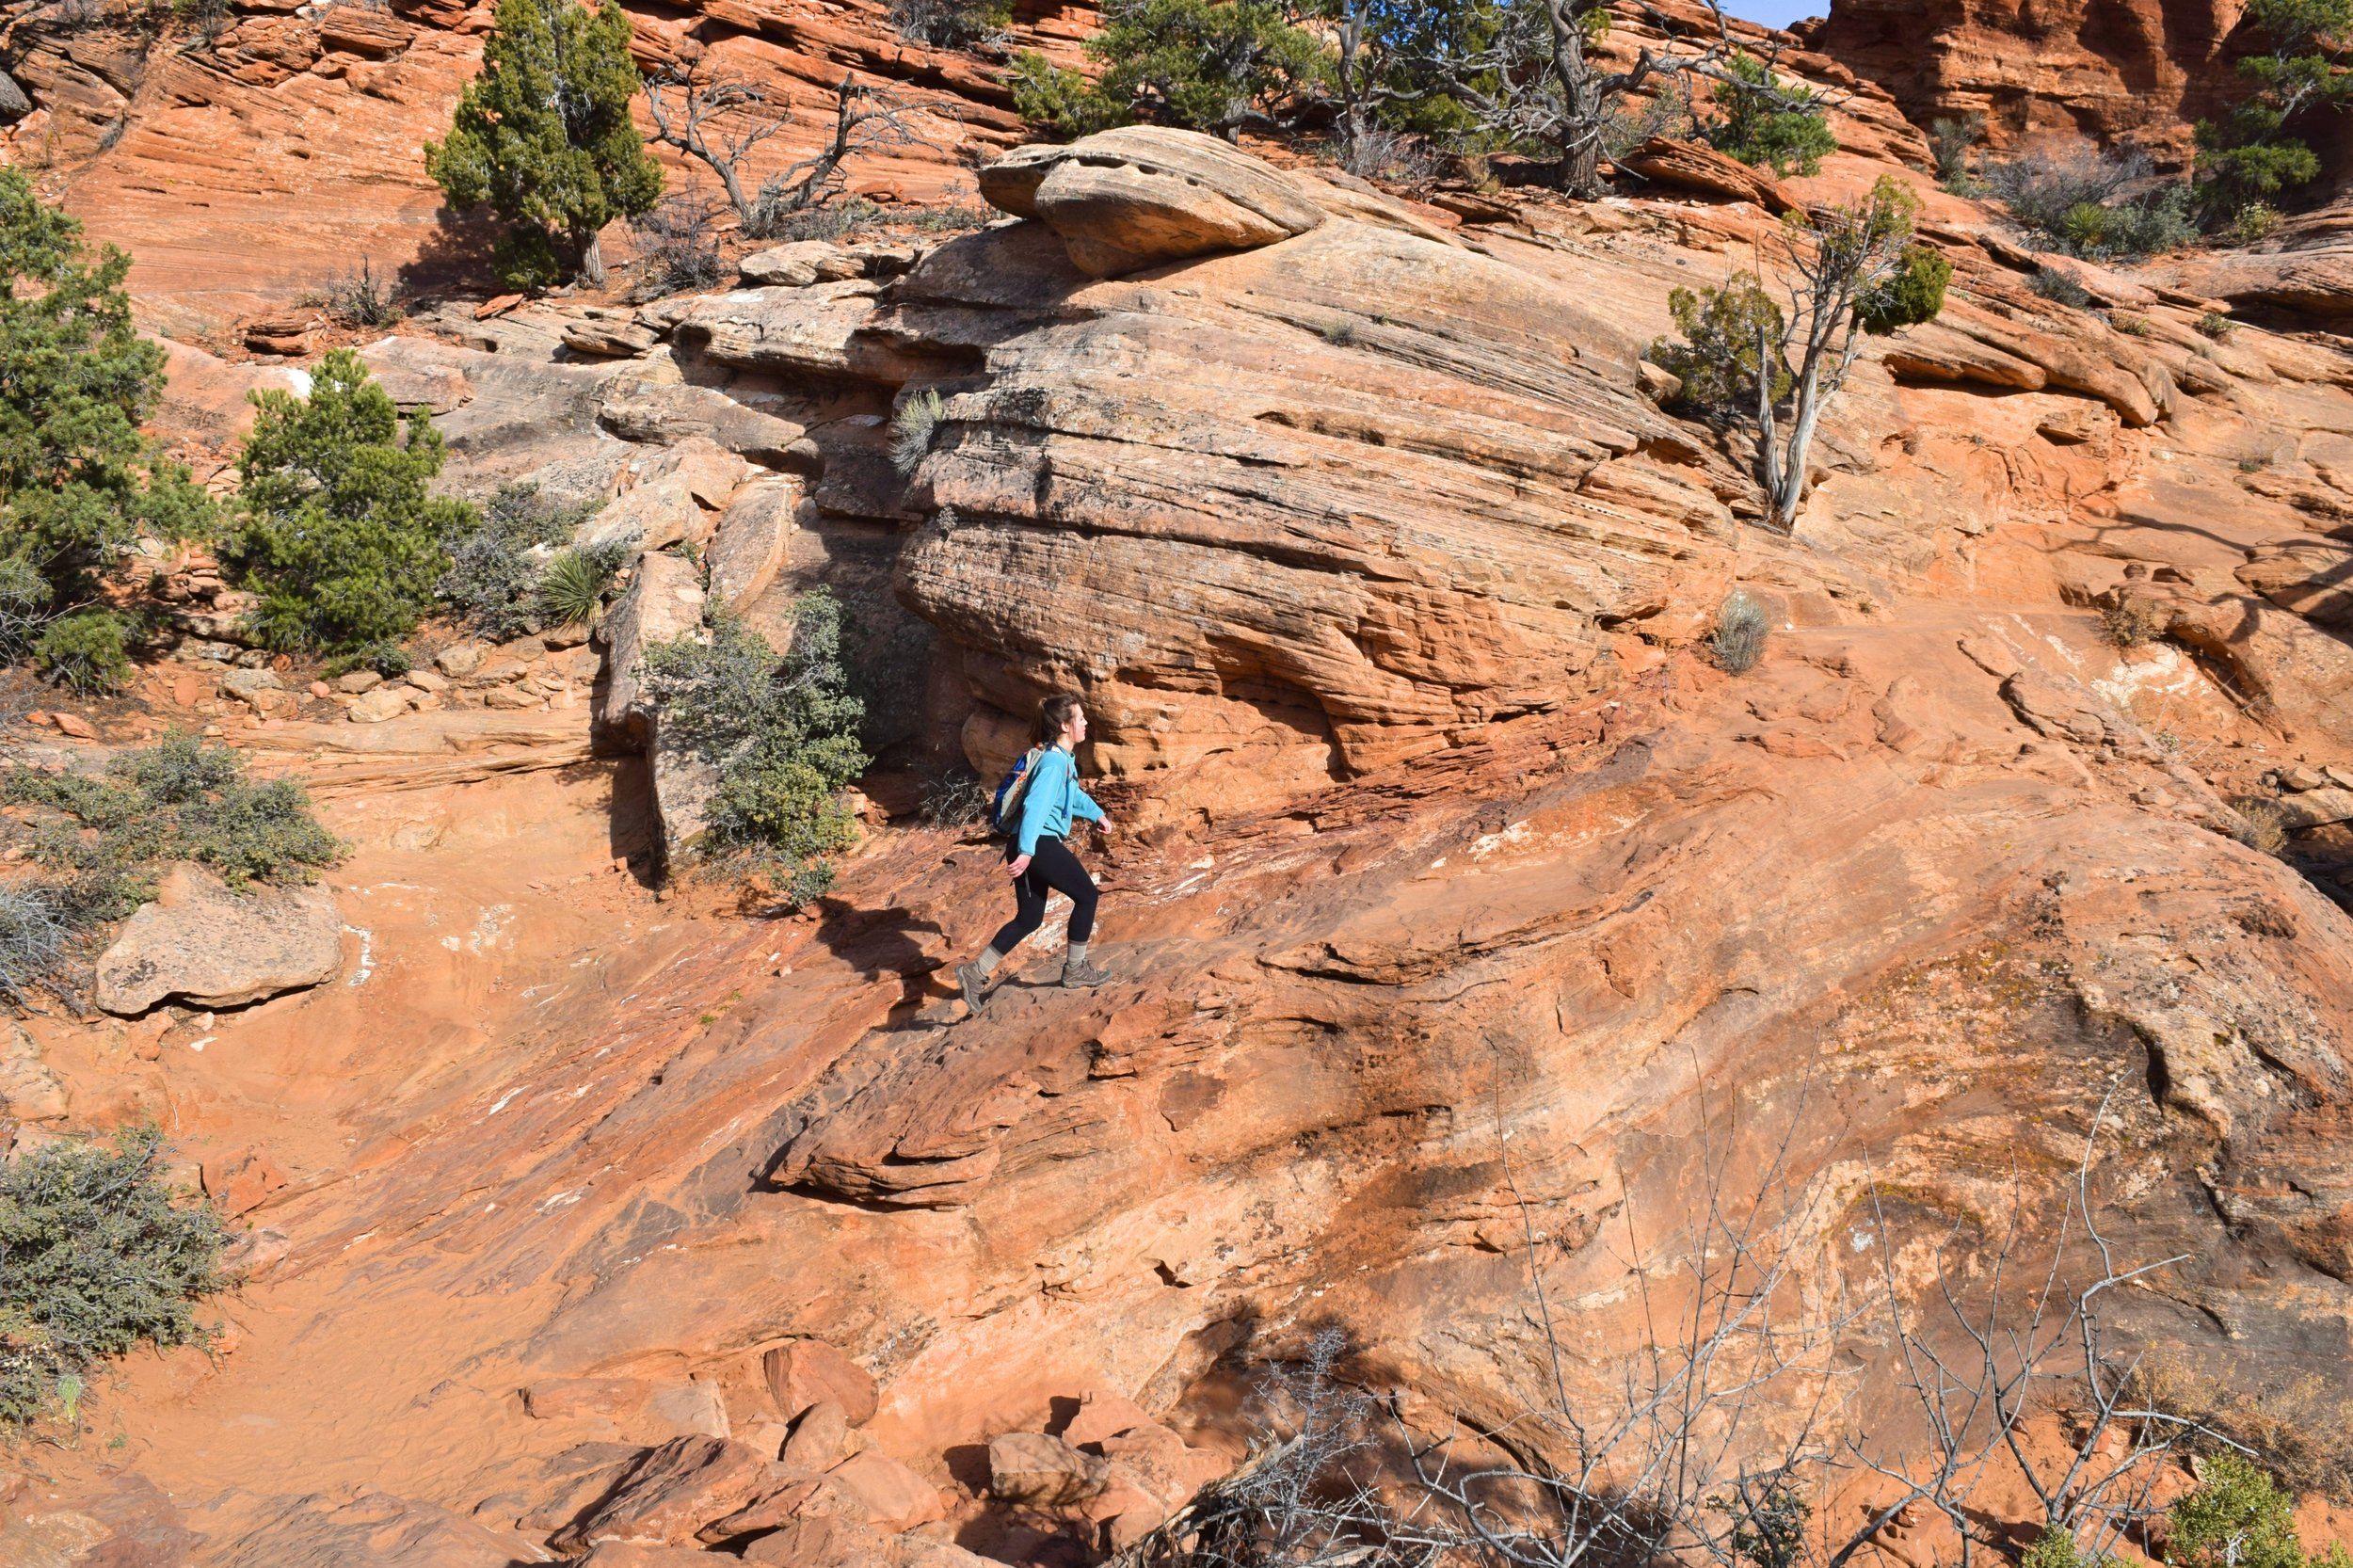 Canyon Overlook Trail, Zion National Park, Utah